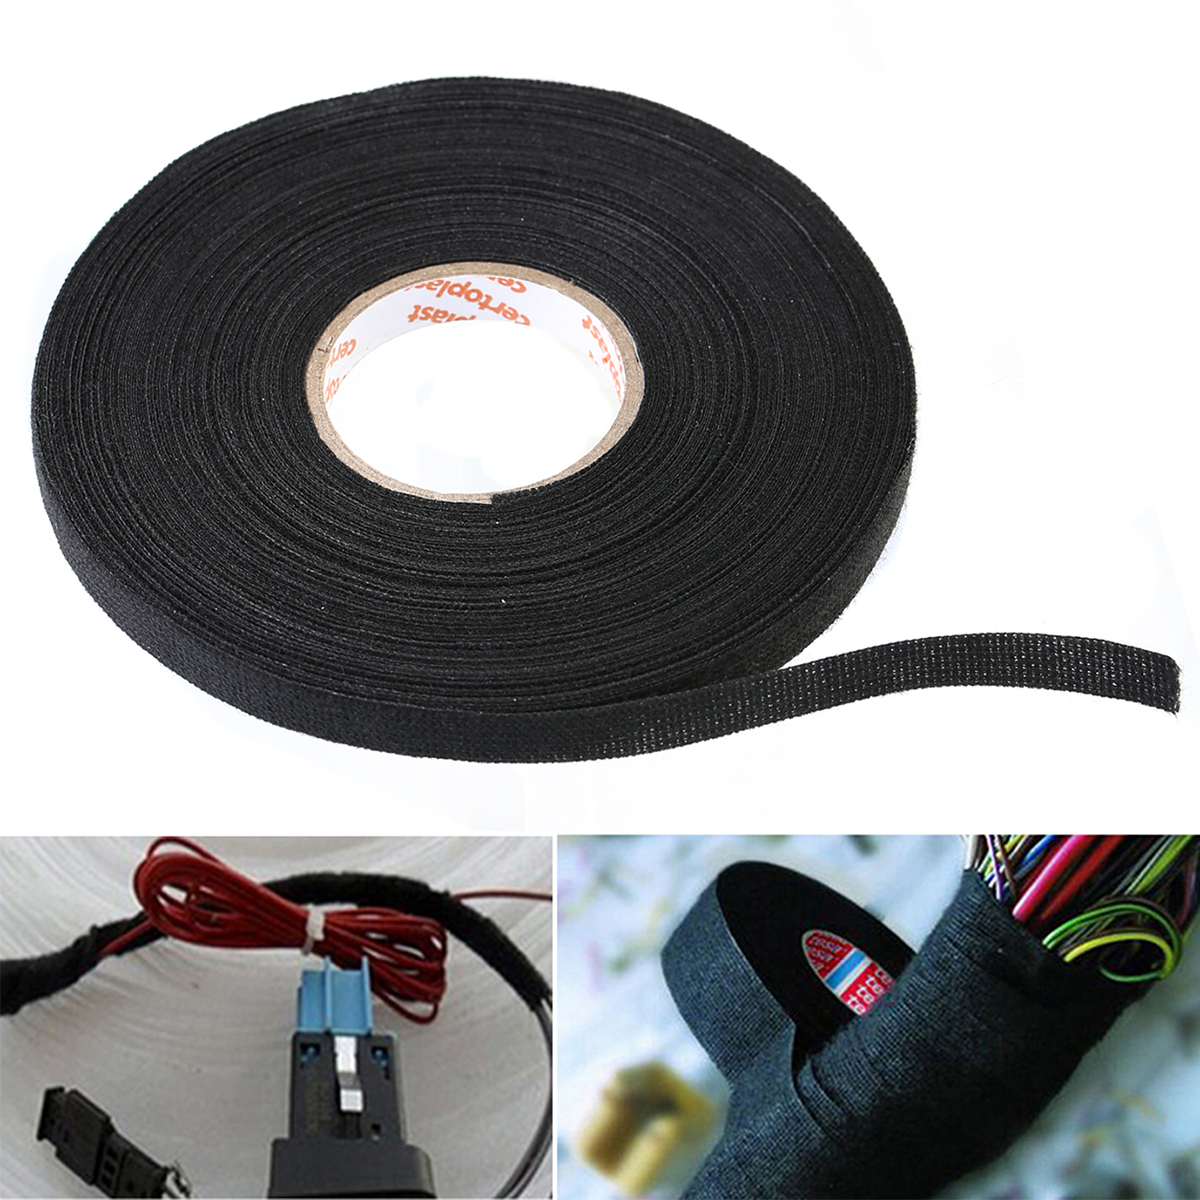 1pc Looms Wiring Harness Adhesive Tapes Black Cloth Fabric Tape Wire Protection Durable Cable Accessories For Cars